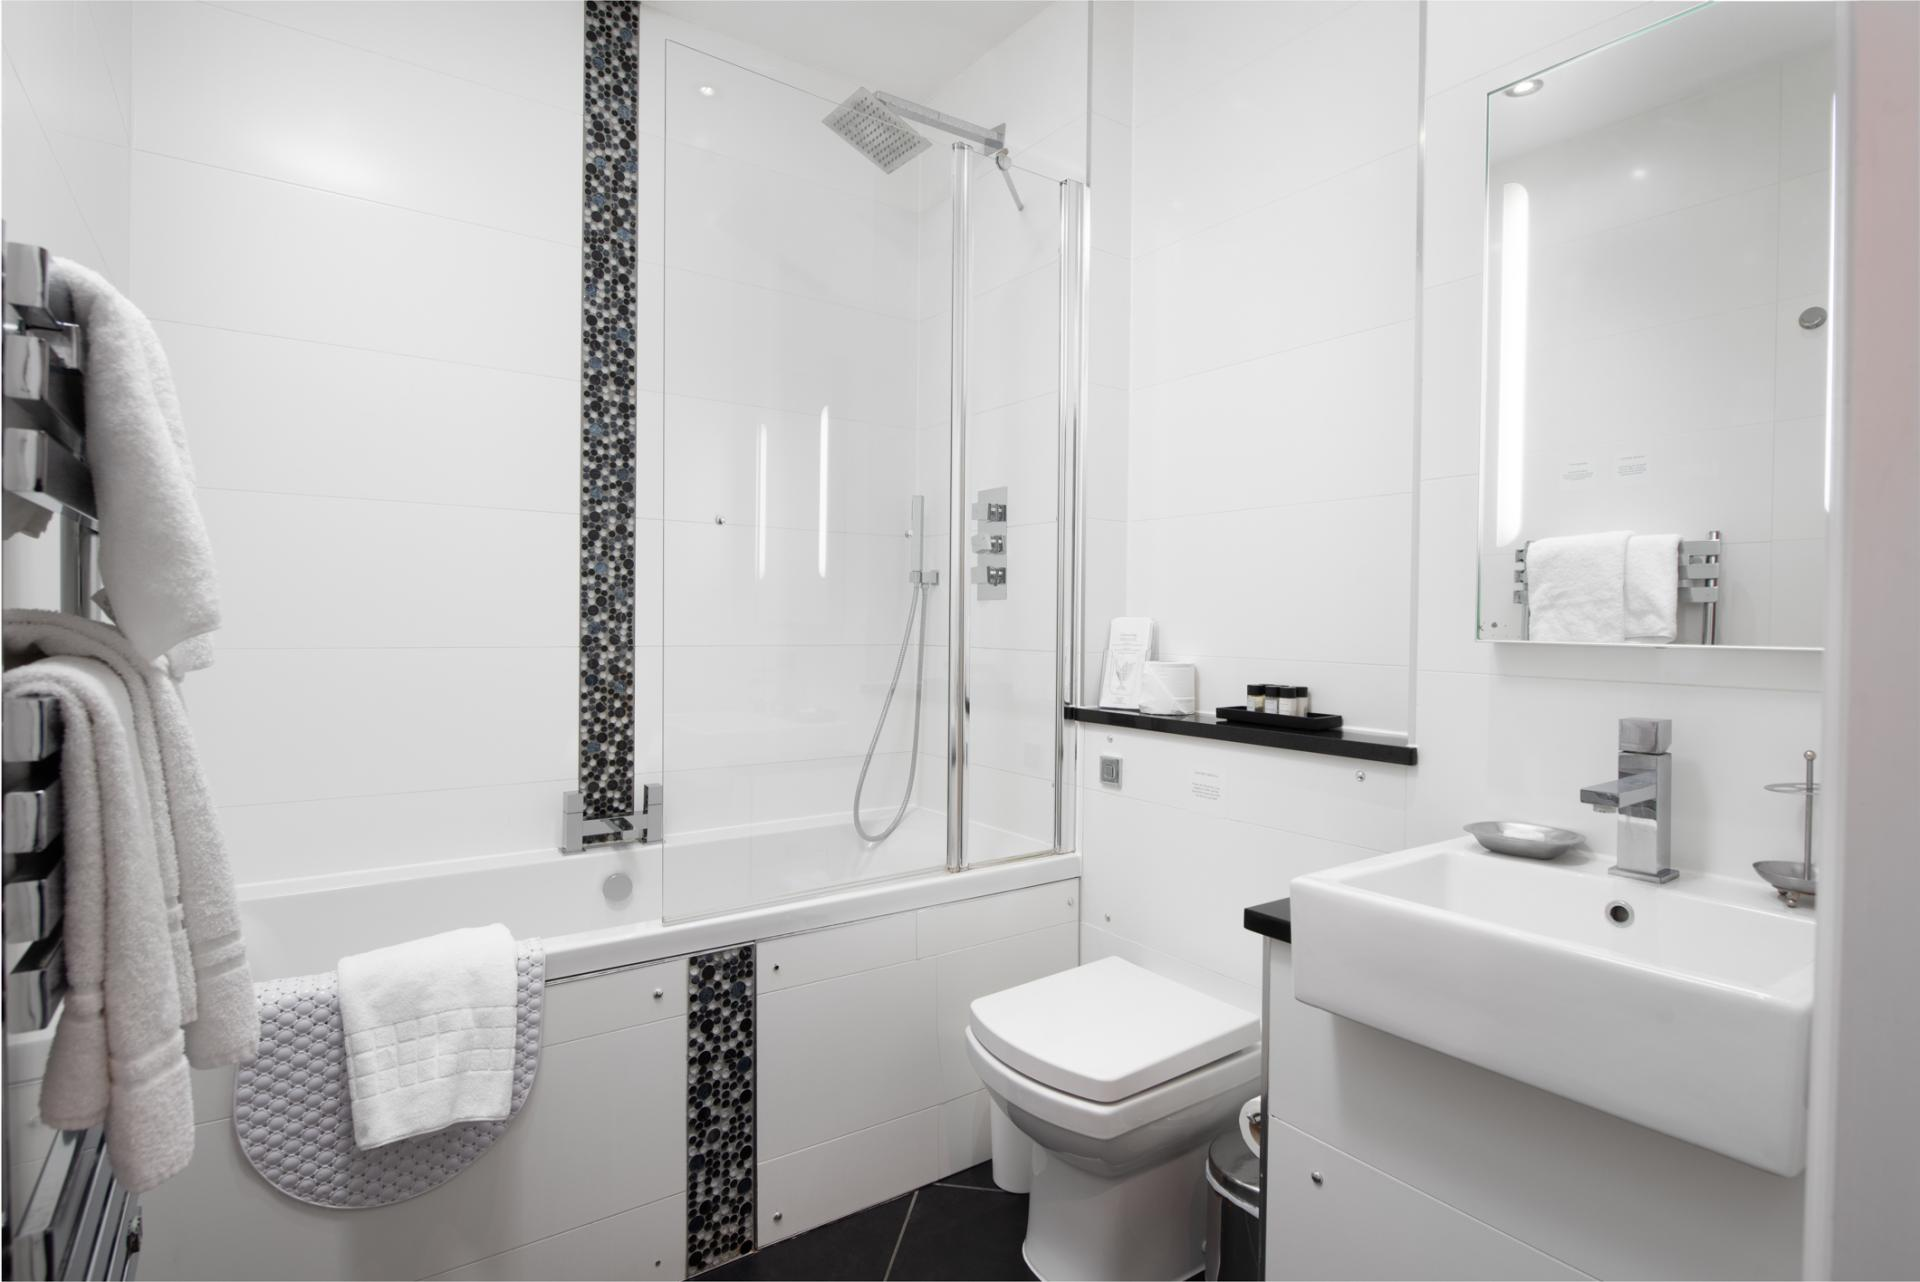 Bathroom at Chelsea Green Apartments, Chelsea, London - Citybase Apartments